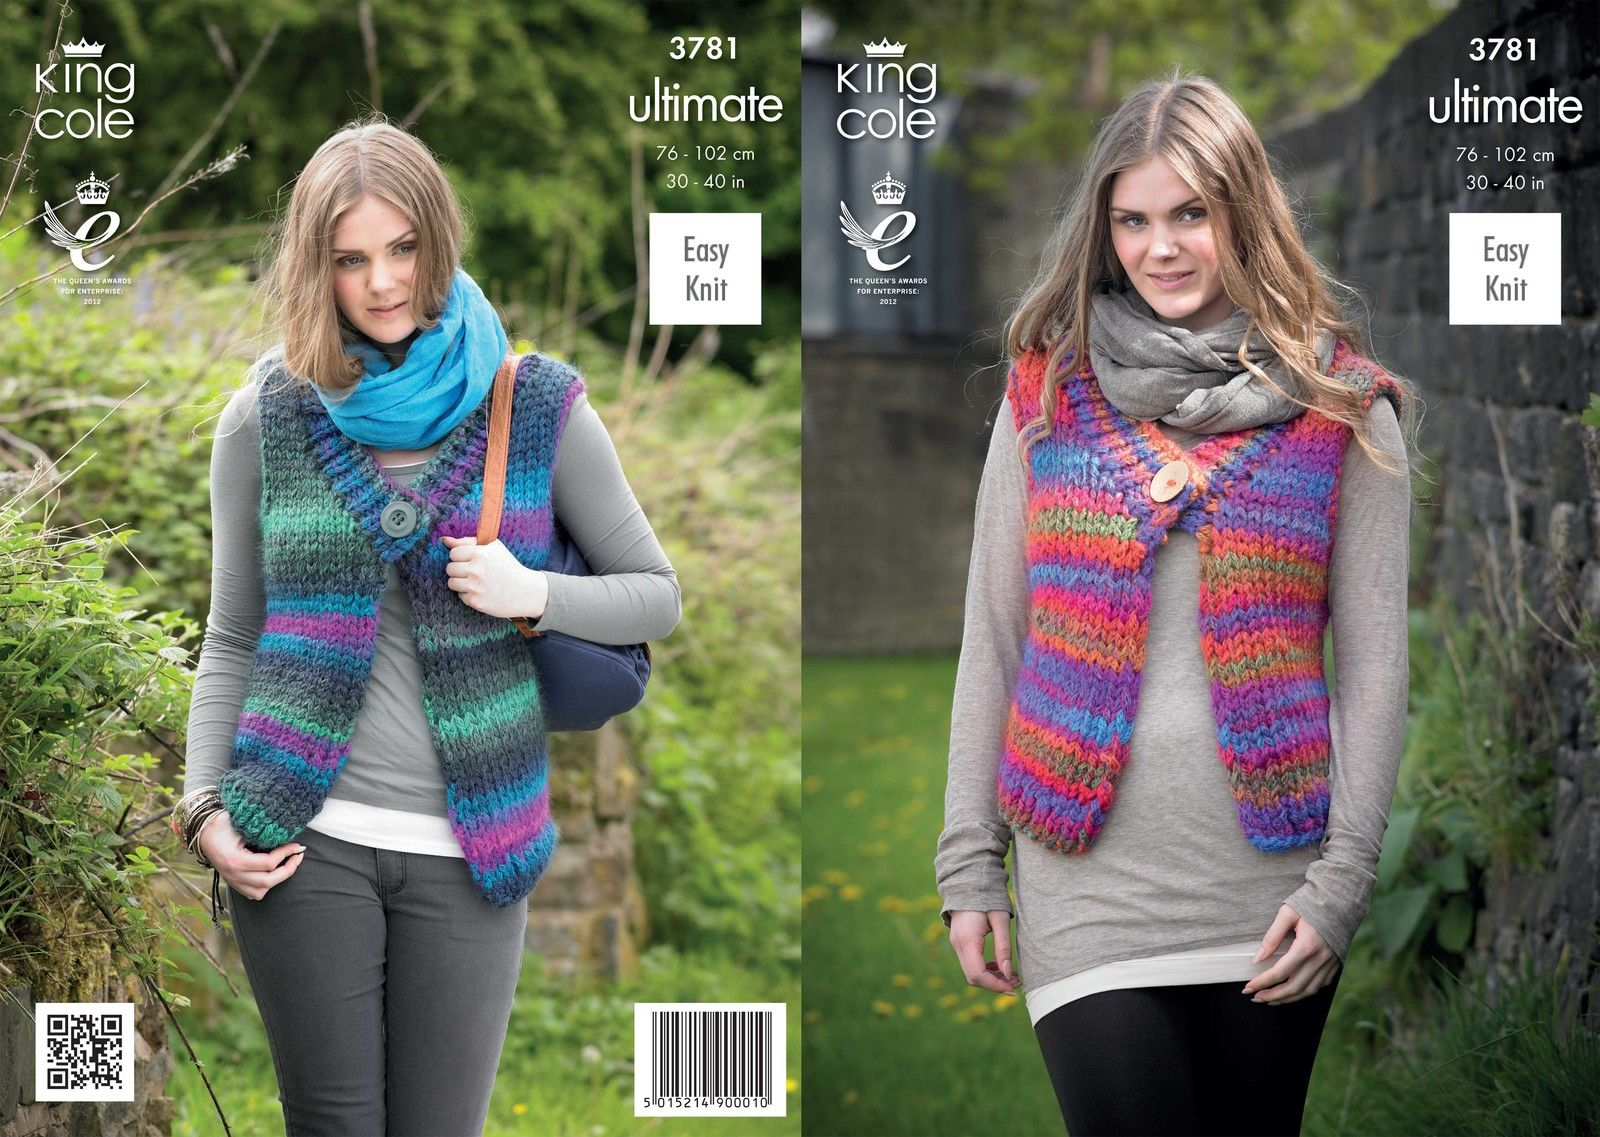 4ed02cf6a 3781 - KING COLE ULTIMATE EASY KNIT SUPER CHUNKY WAISTCOAT KNITTING PATTERN  - TO FIT 30 TO 40